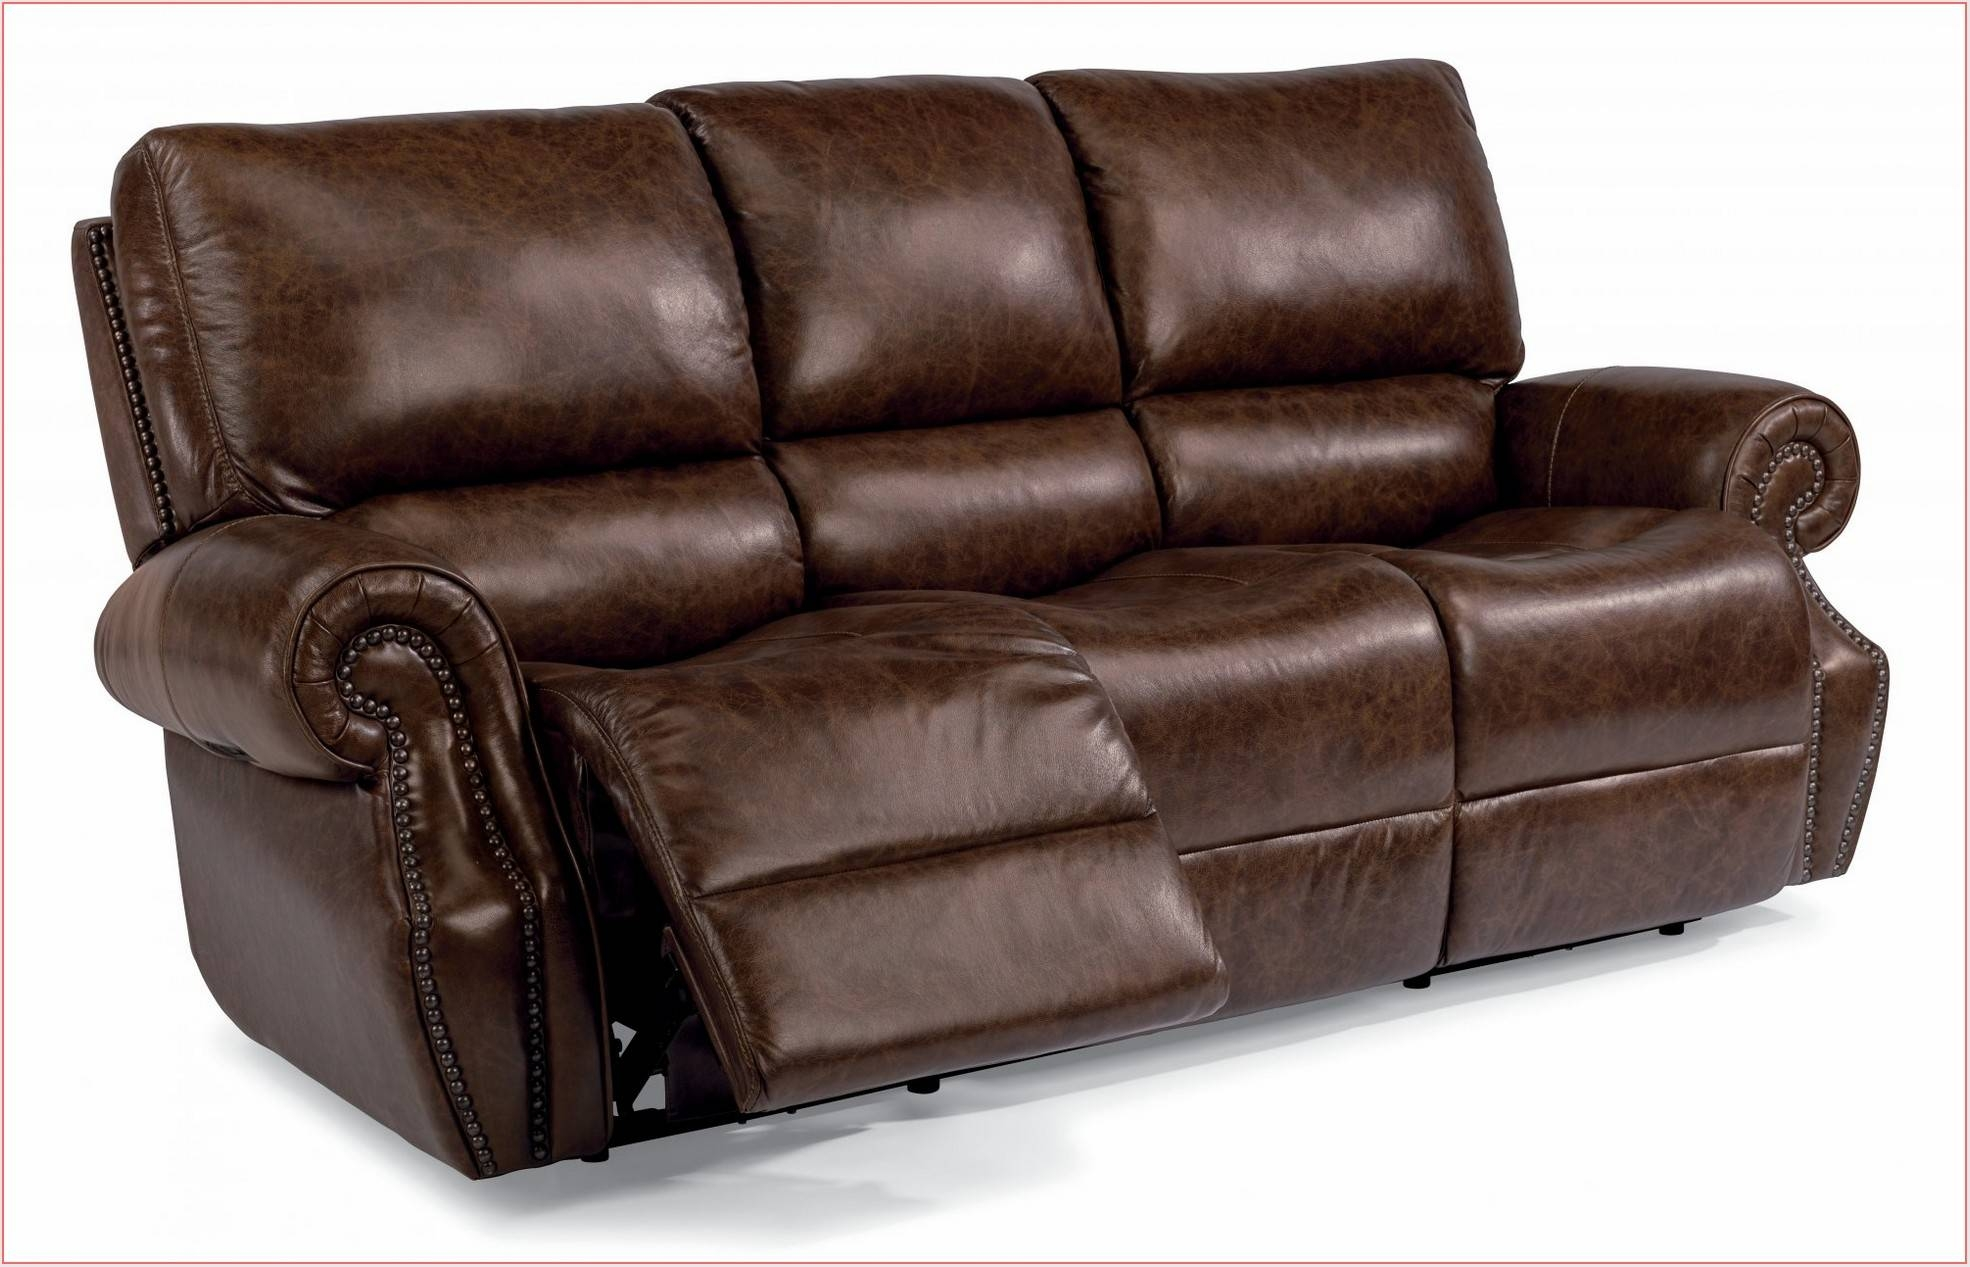 Interesting Closeout Sectional Sofas 28 For Durable Sectional Sofa regarding Durable Sectional Sofa (Image 18 of 30)